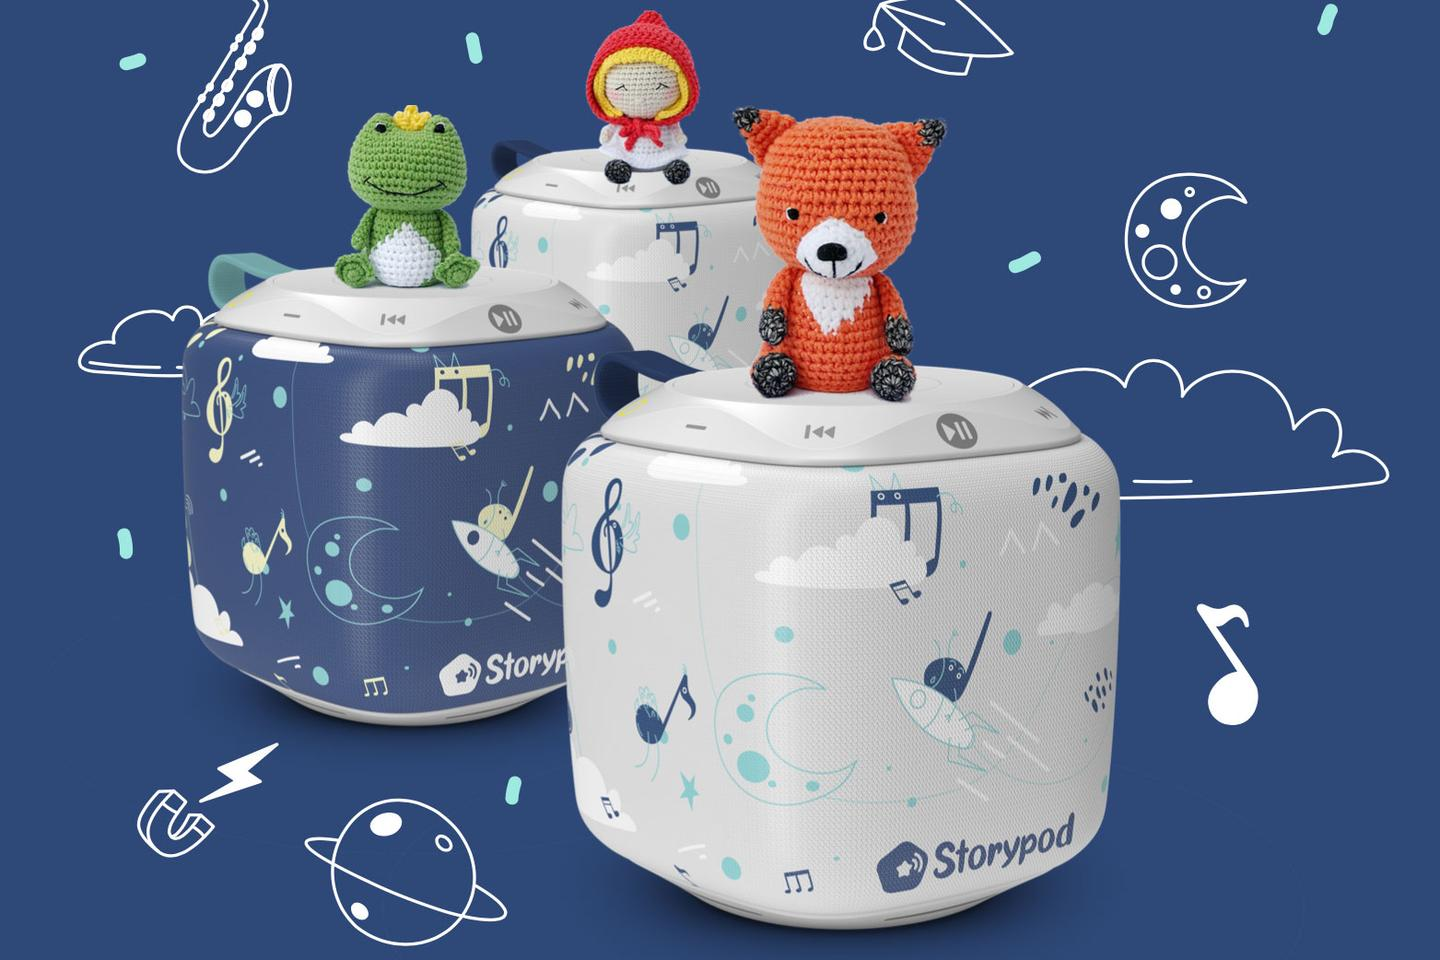 Storypod is a smart speaker that works with cute yarn figurines to deliver kid-friendly stories, songs and games